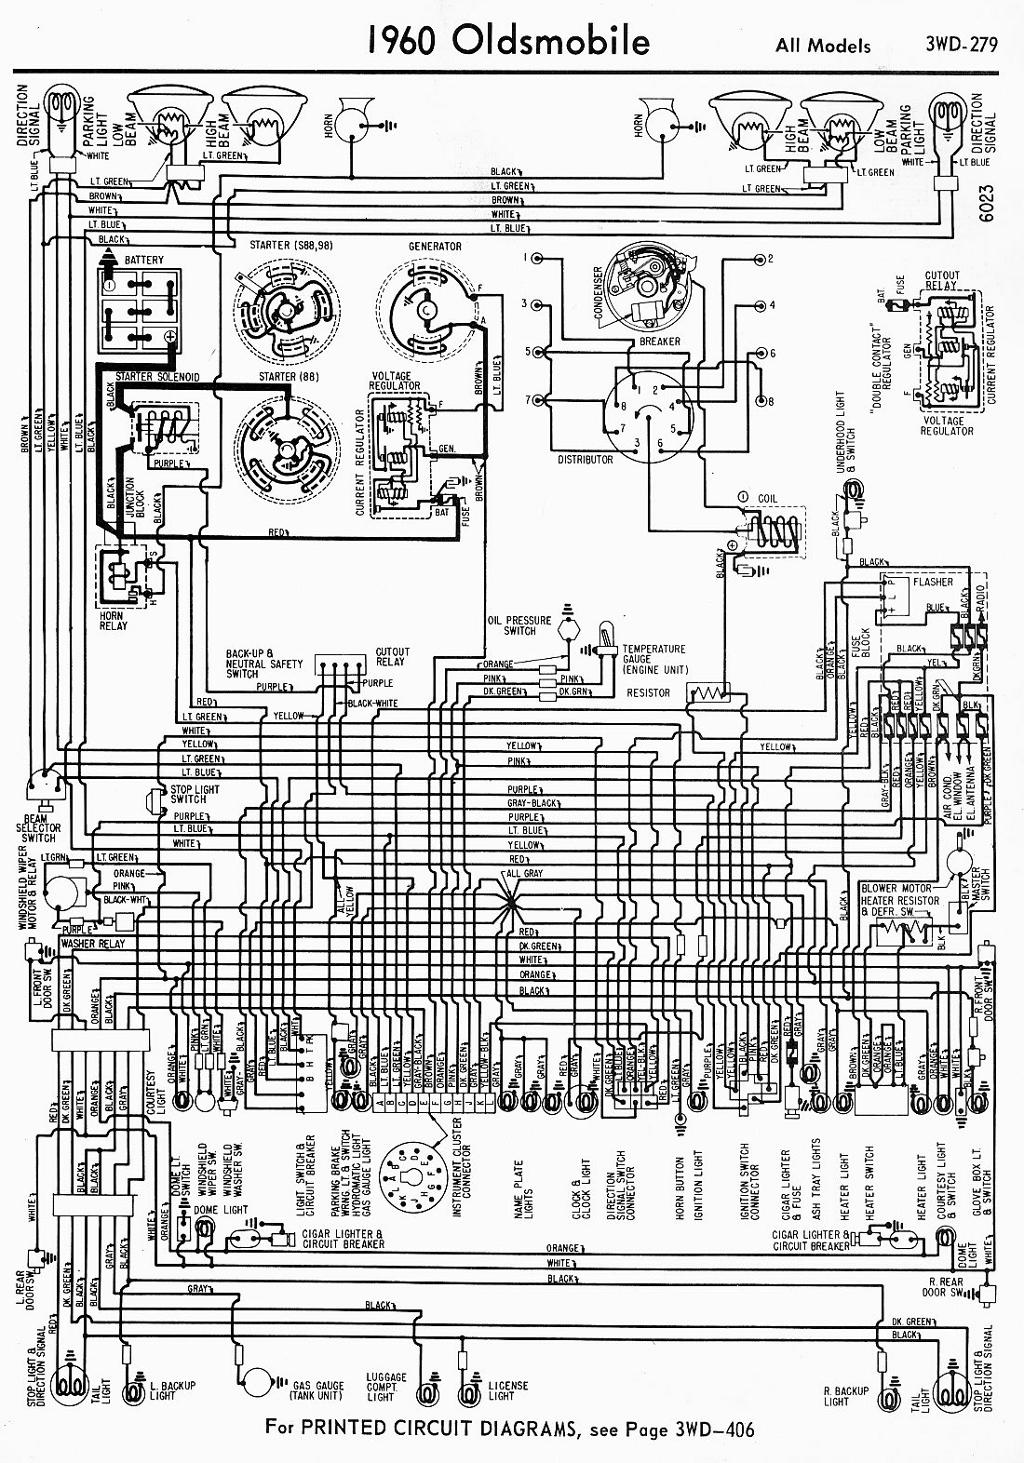 1964 Oldsmobile Wiring Diagram Free Image Wiring Diagram Engine